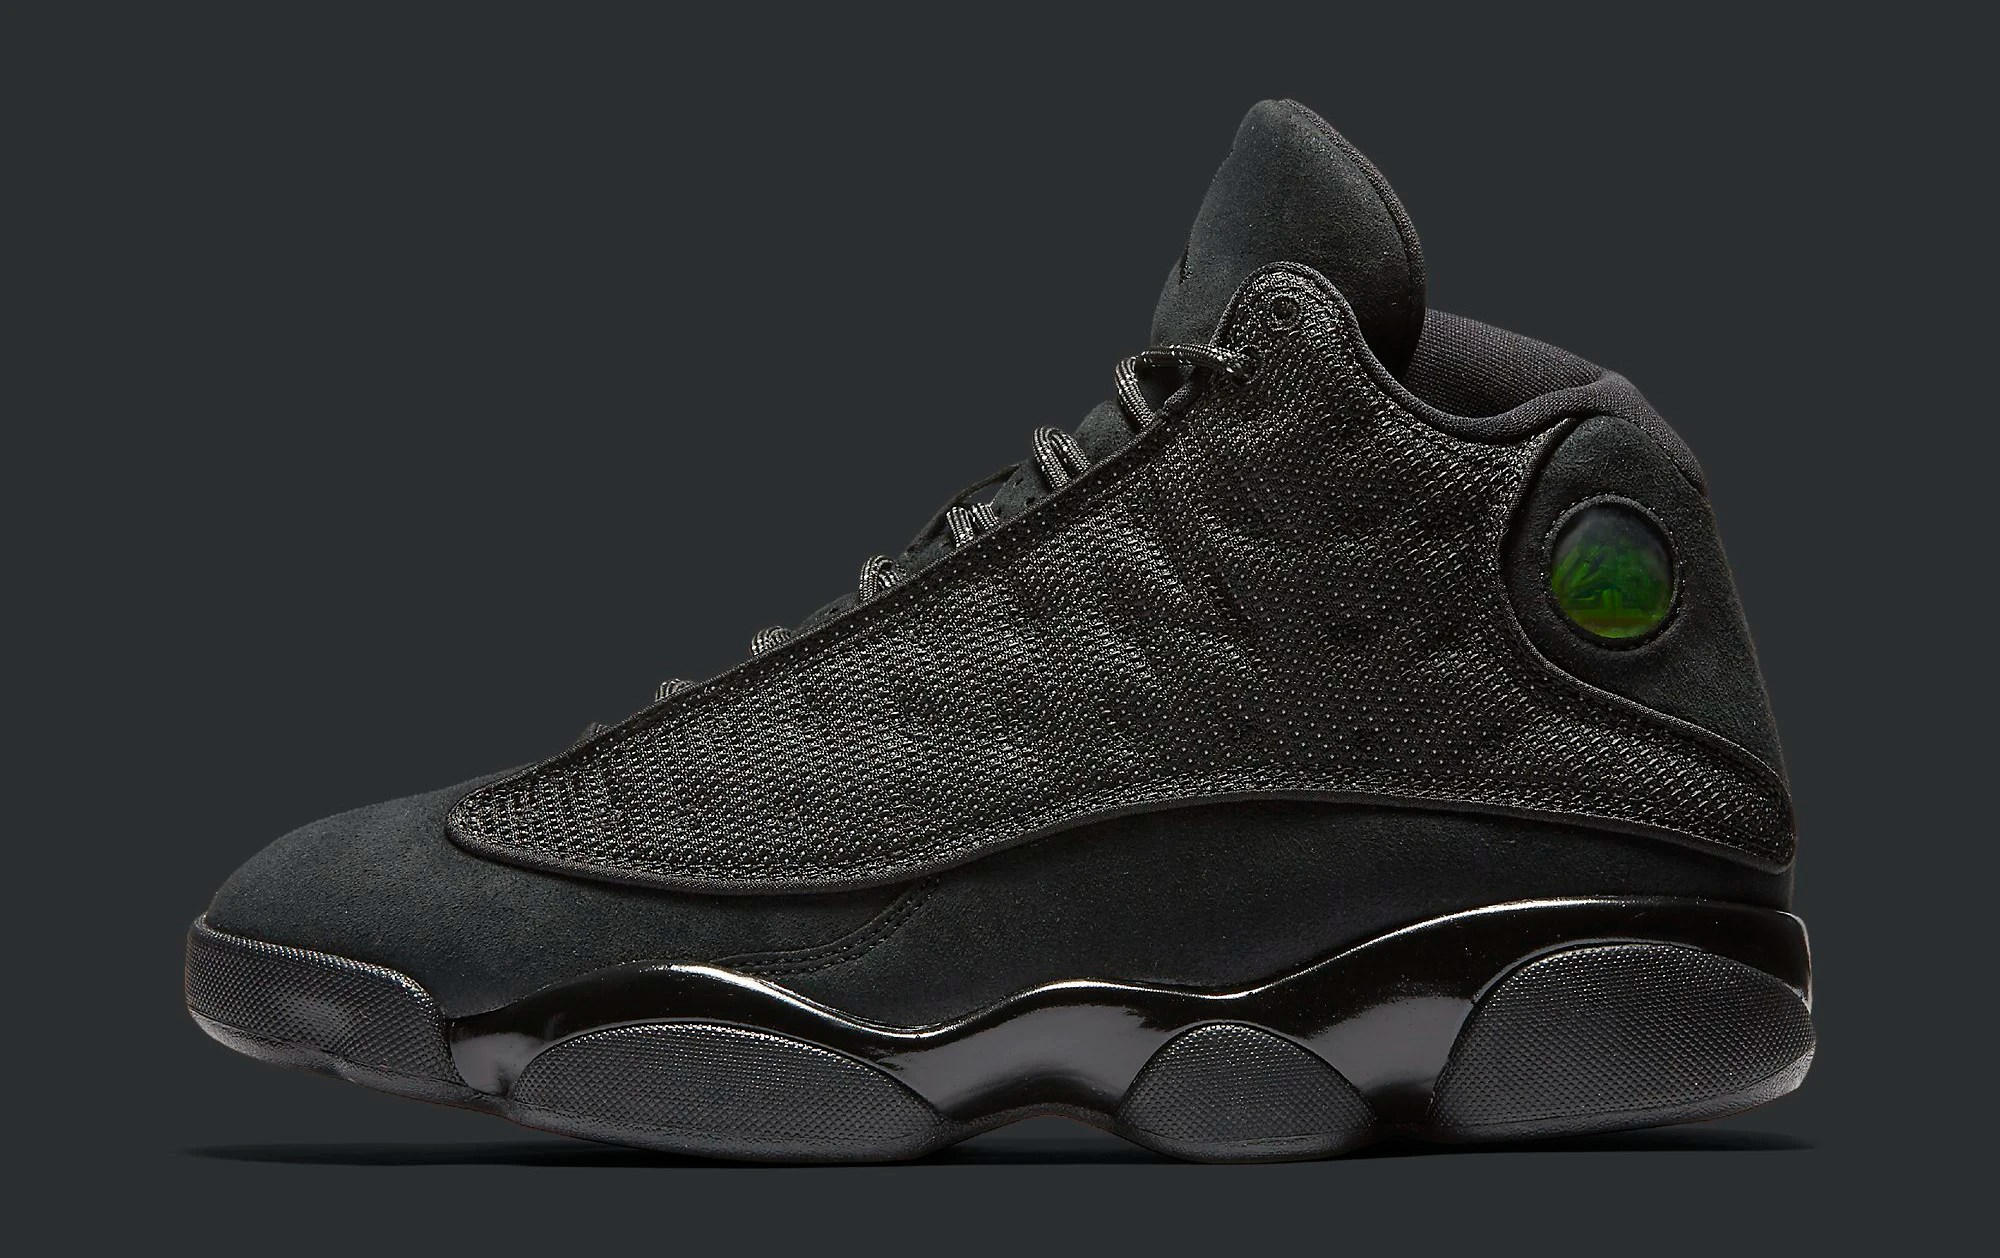 Black Cat Air Jordan 13 414571-011 Profile